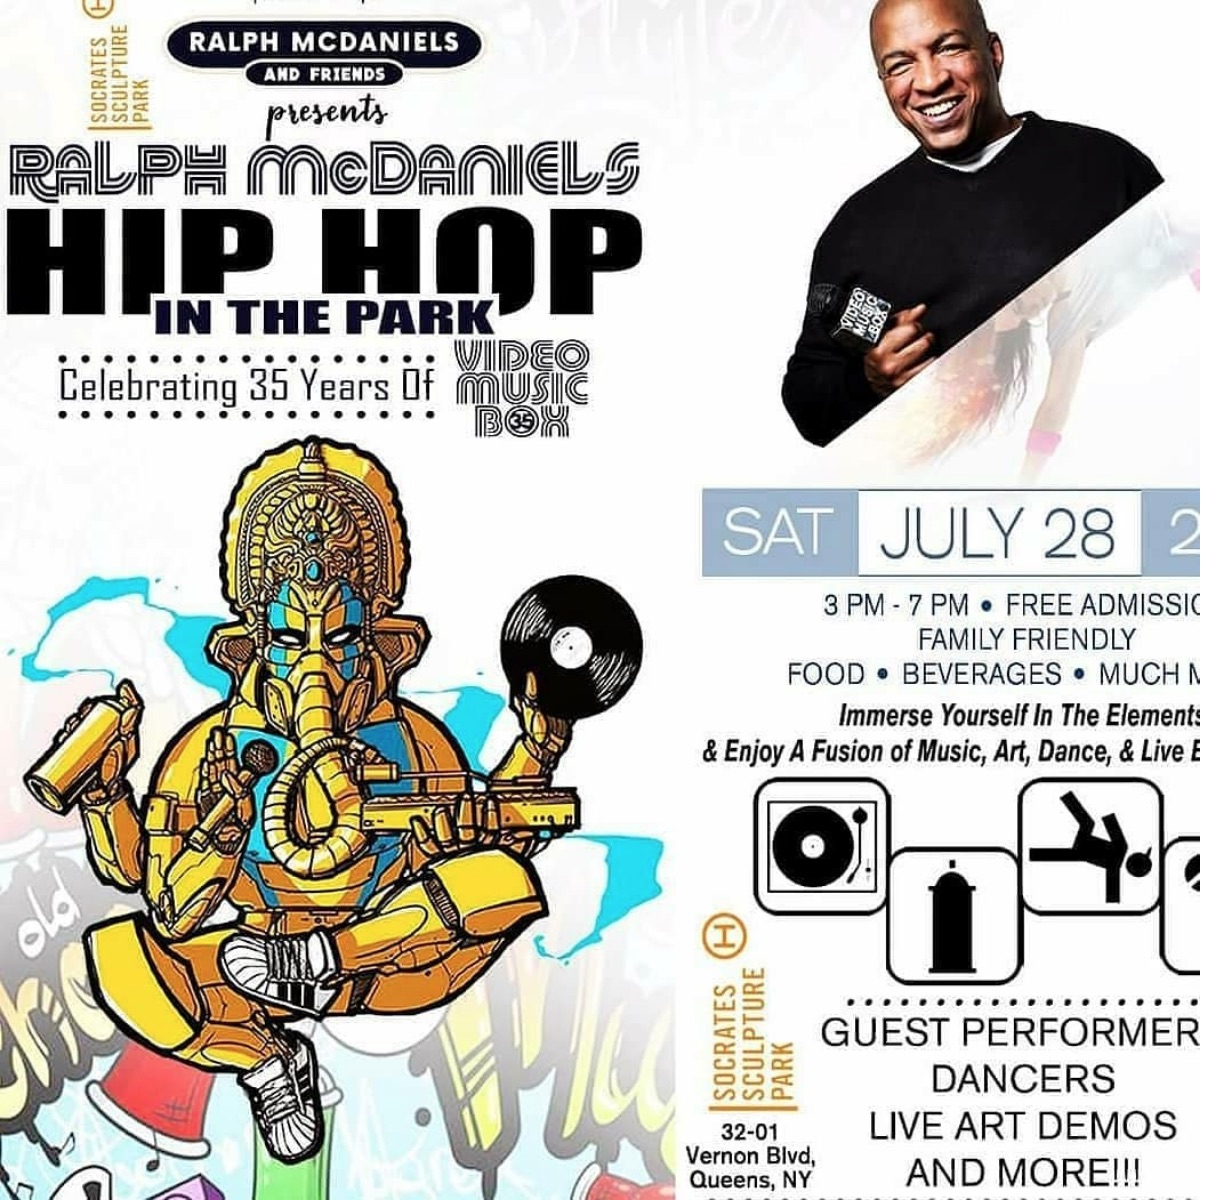 RALPH MCDANIELS HIPHOP IN THE PARK.jpg